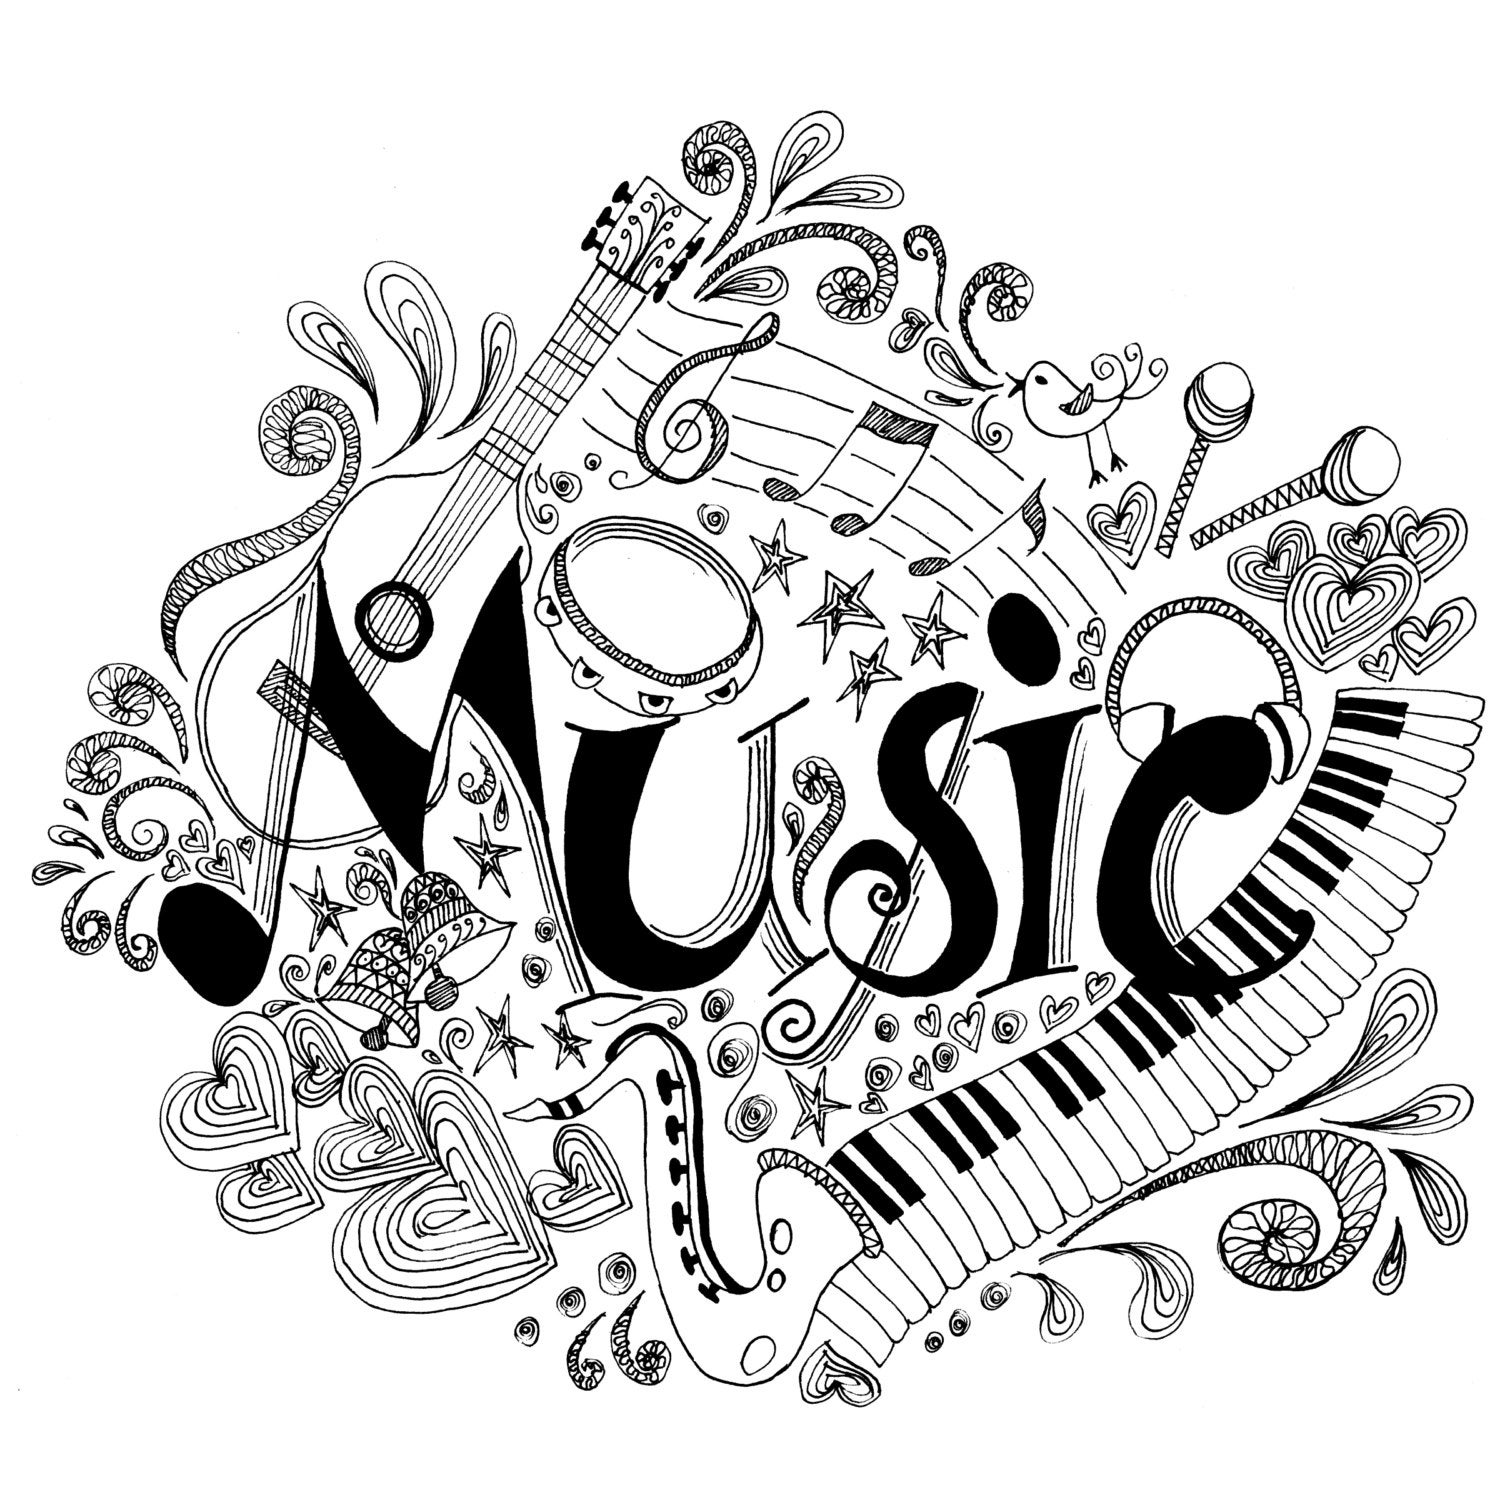 music coloring page best 330 music coloring pages for adults ideas on music page coloring